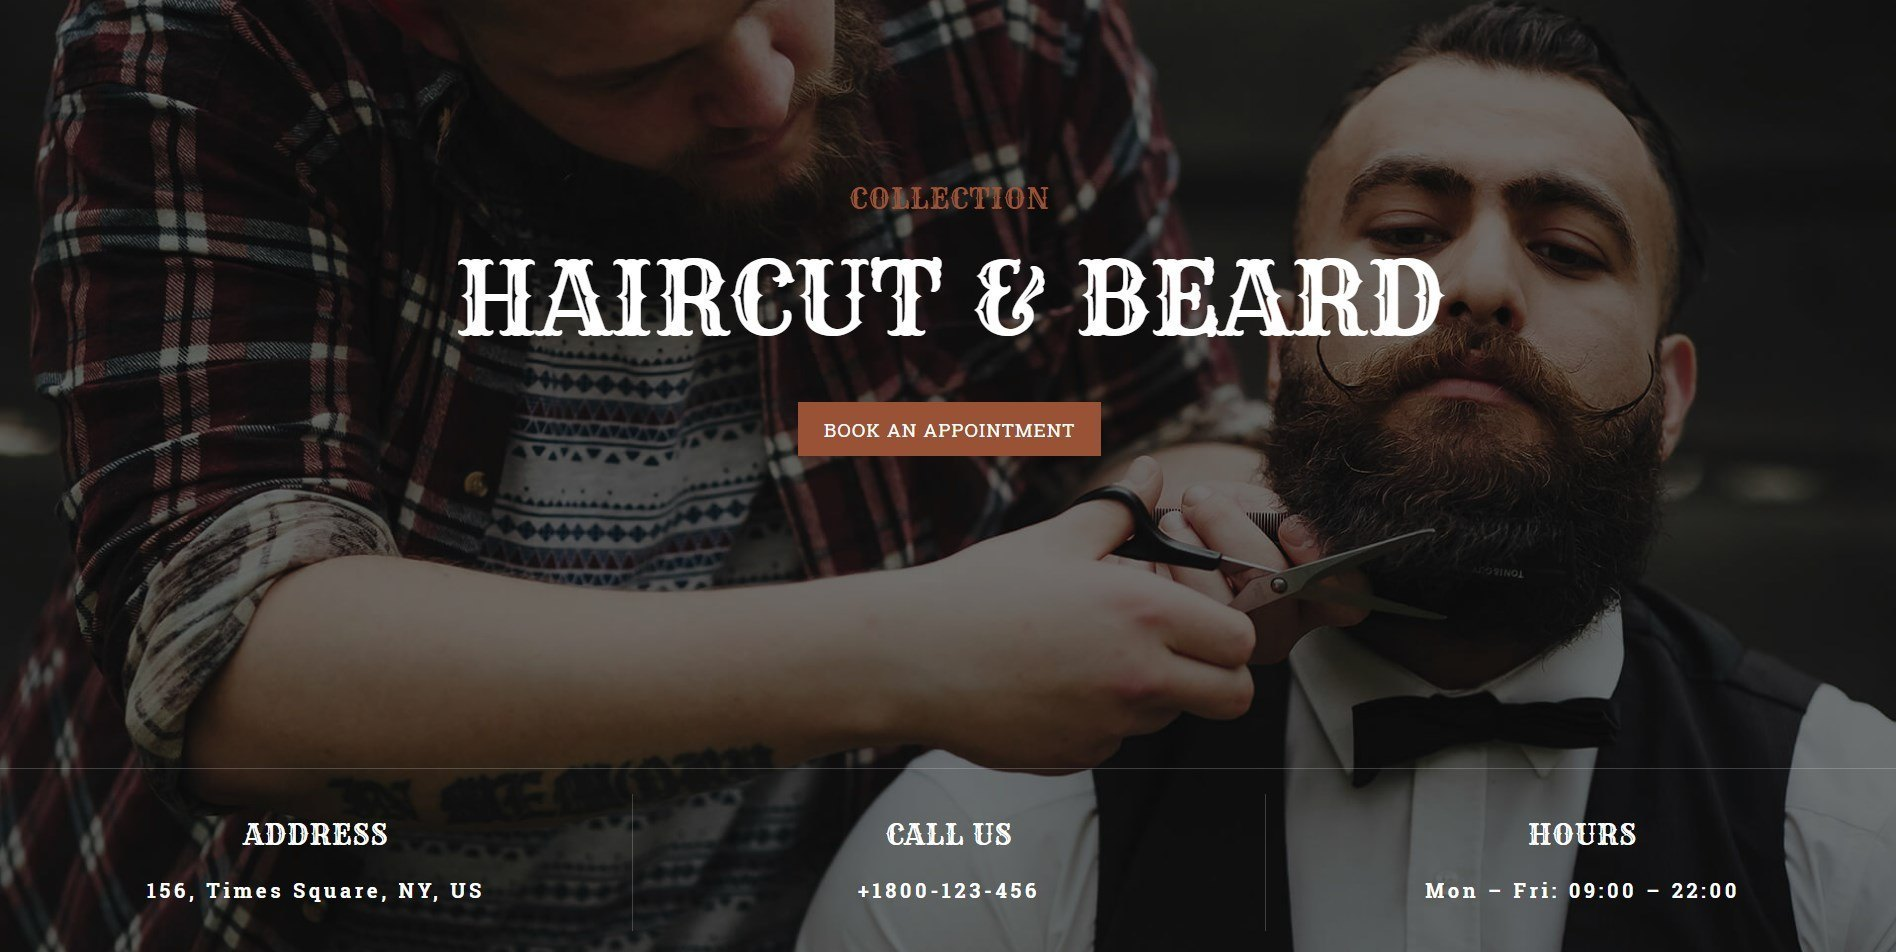 A Stylish And Happening Page Template For A Grooming Or A Barber